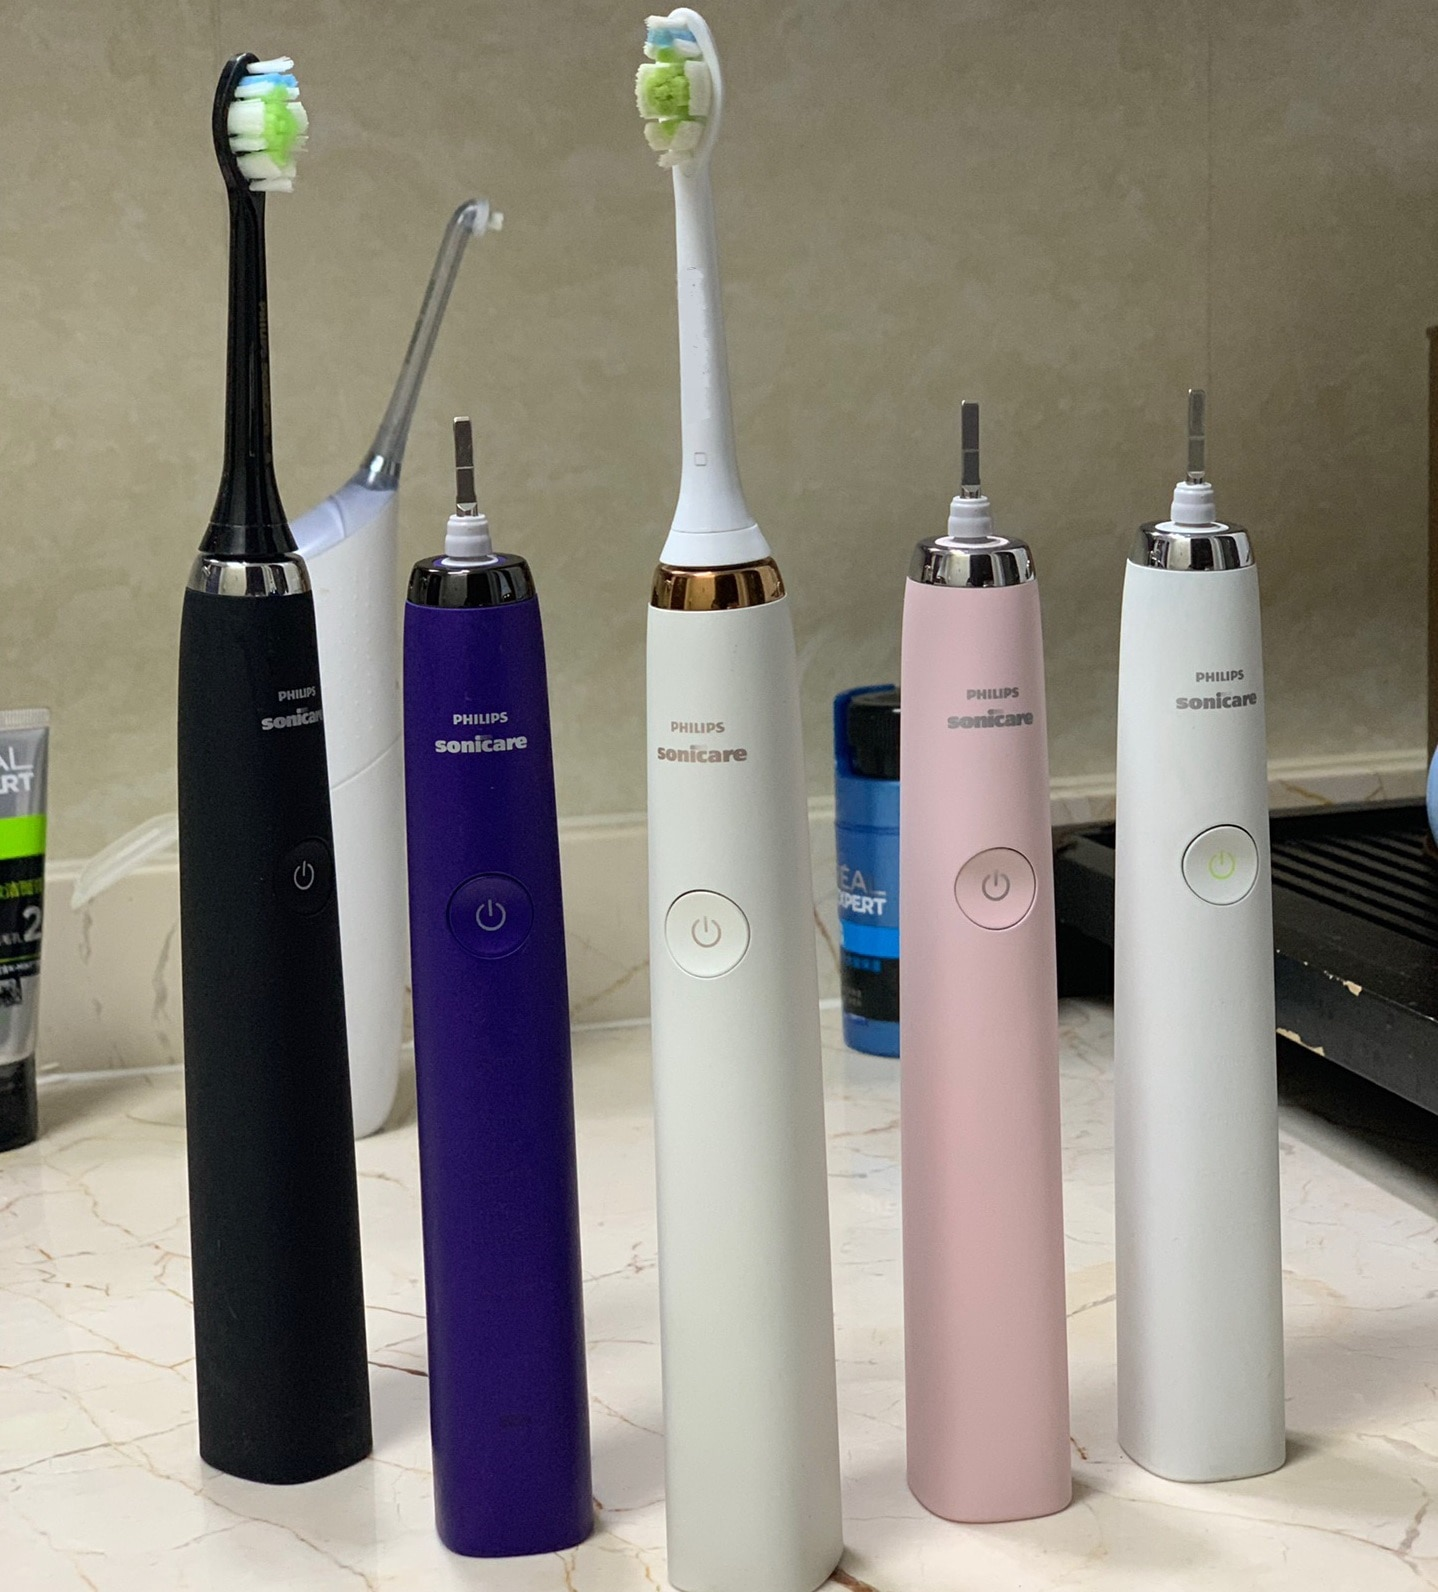 Philips Electric Toothbrush Sonicare Diamond series Sonic Waterproof 5 Modes HX9340 Upgrade 4th Generation HX939 Handle enlarge